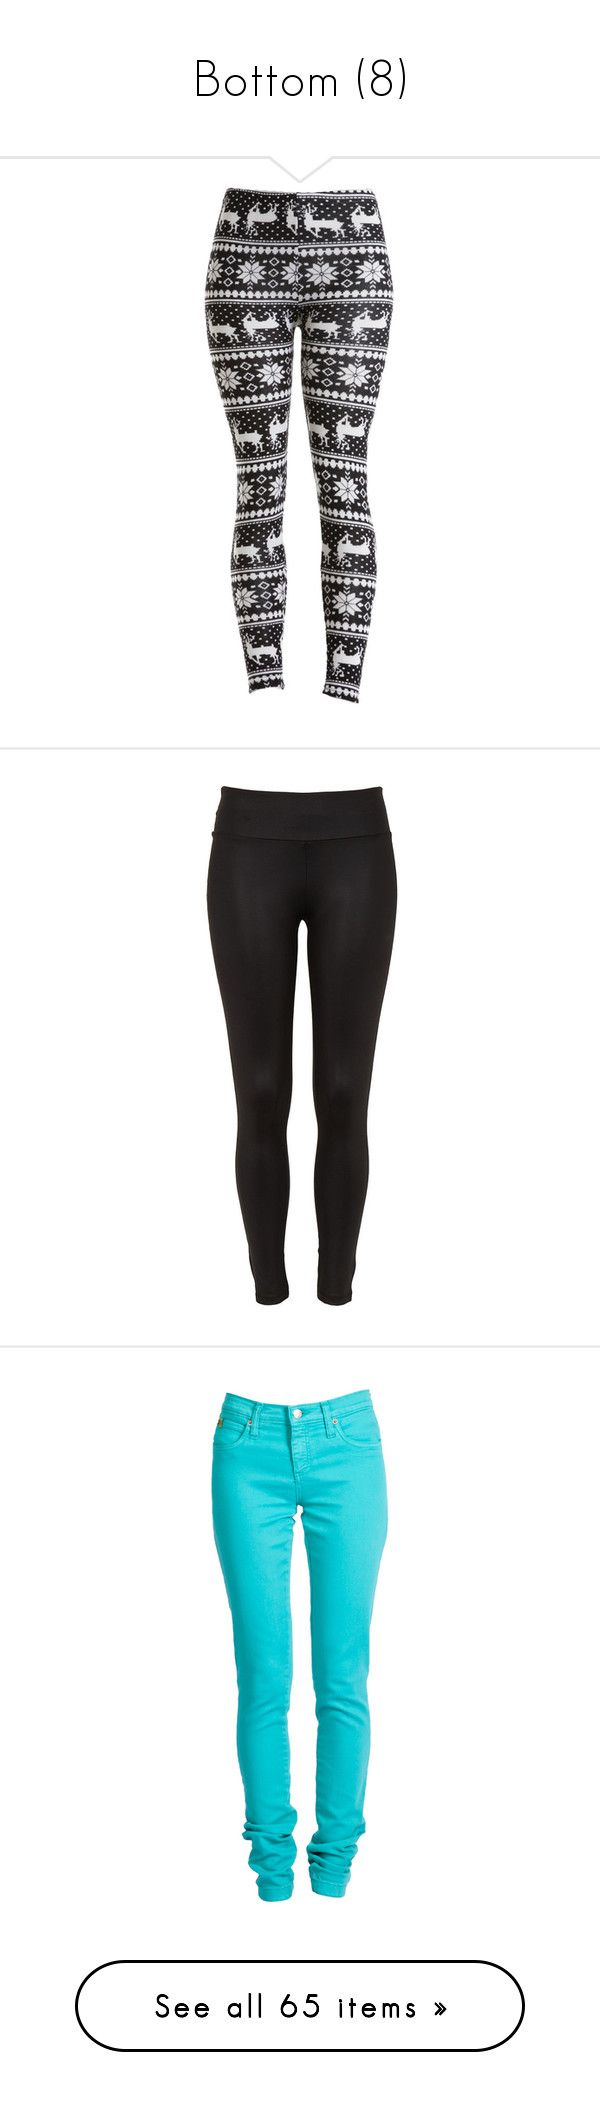 """Bottom (8)"" by glitterals ❤ liked on Polyvore featuring pants, leggings, bottoms, calças, womens plus size leggings, paisley leggings, plus size pants, womens plus pants, paisley print pants and river island"